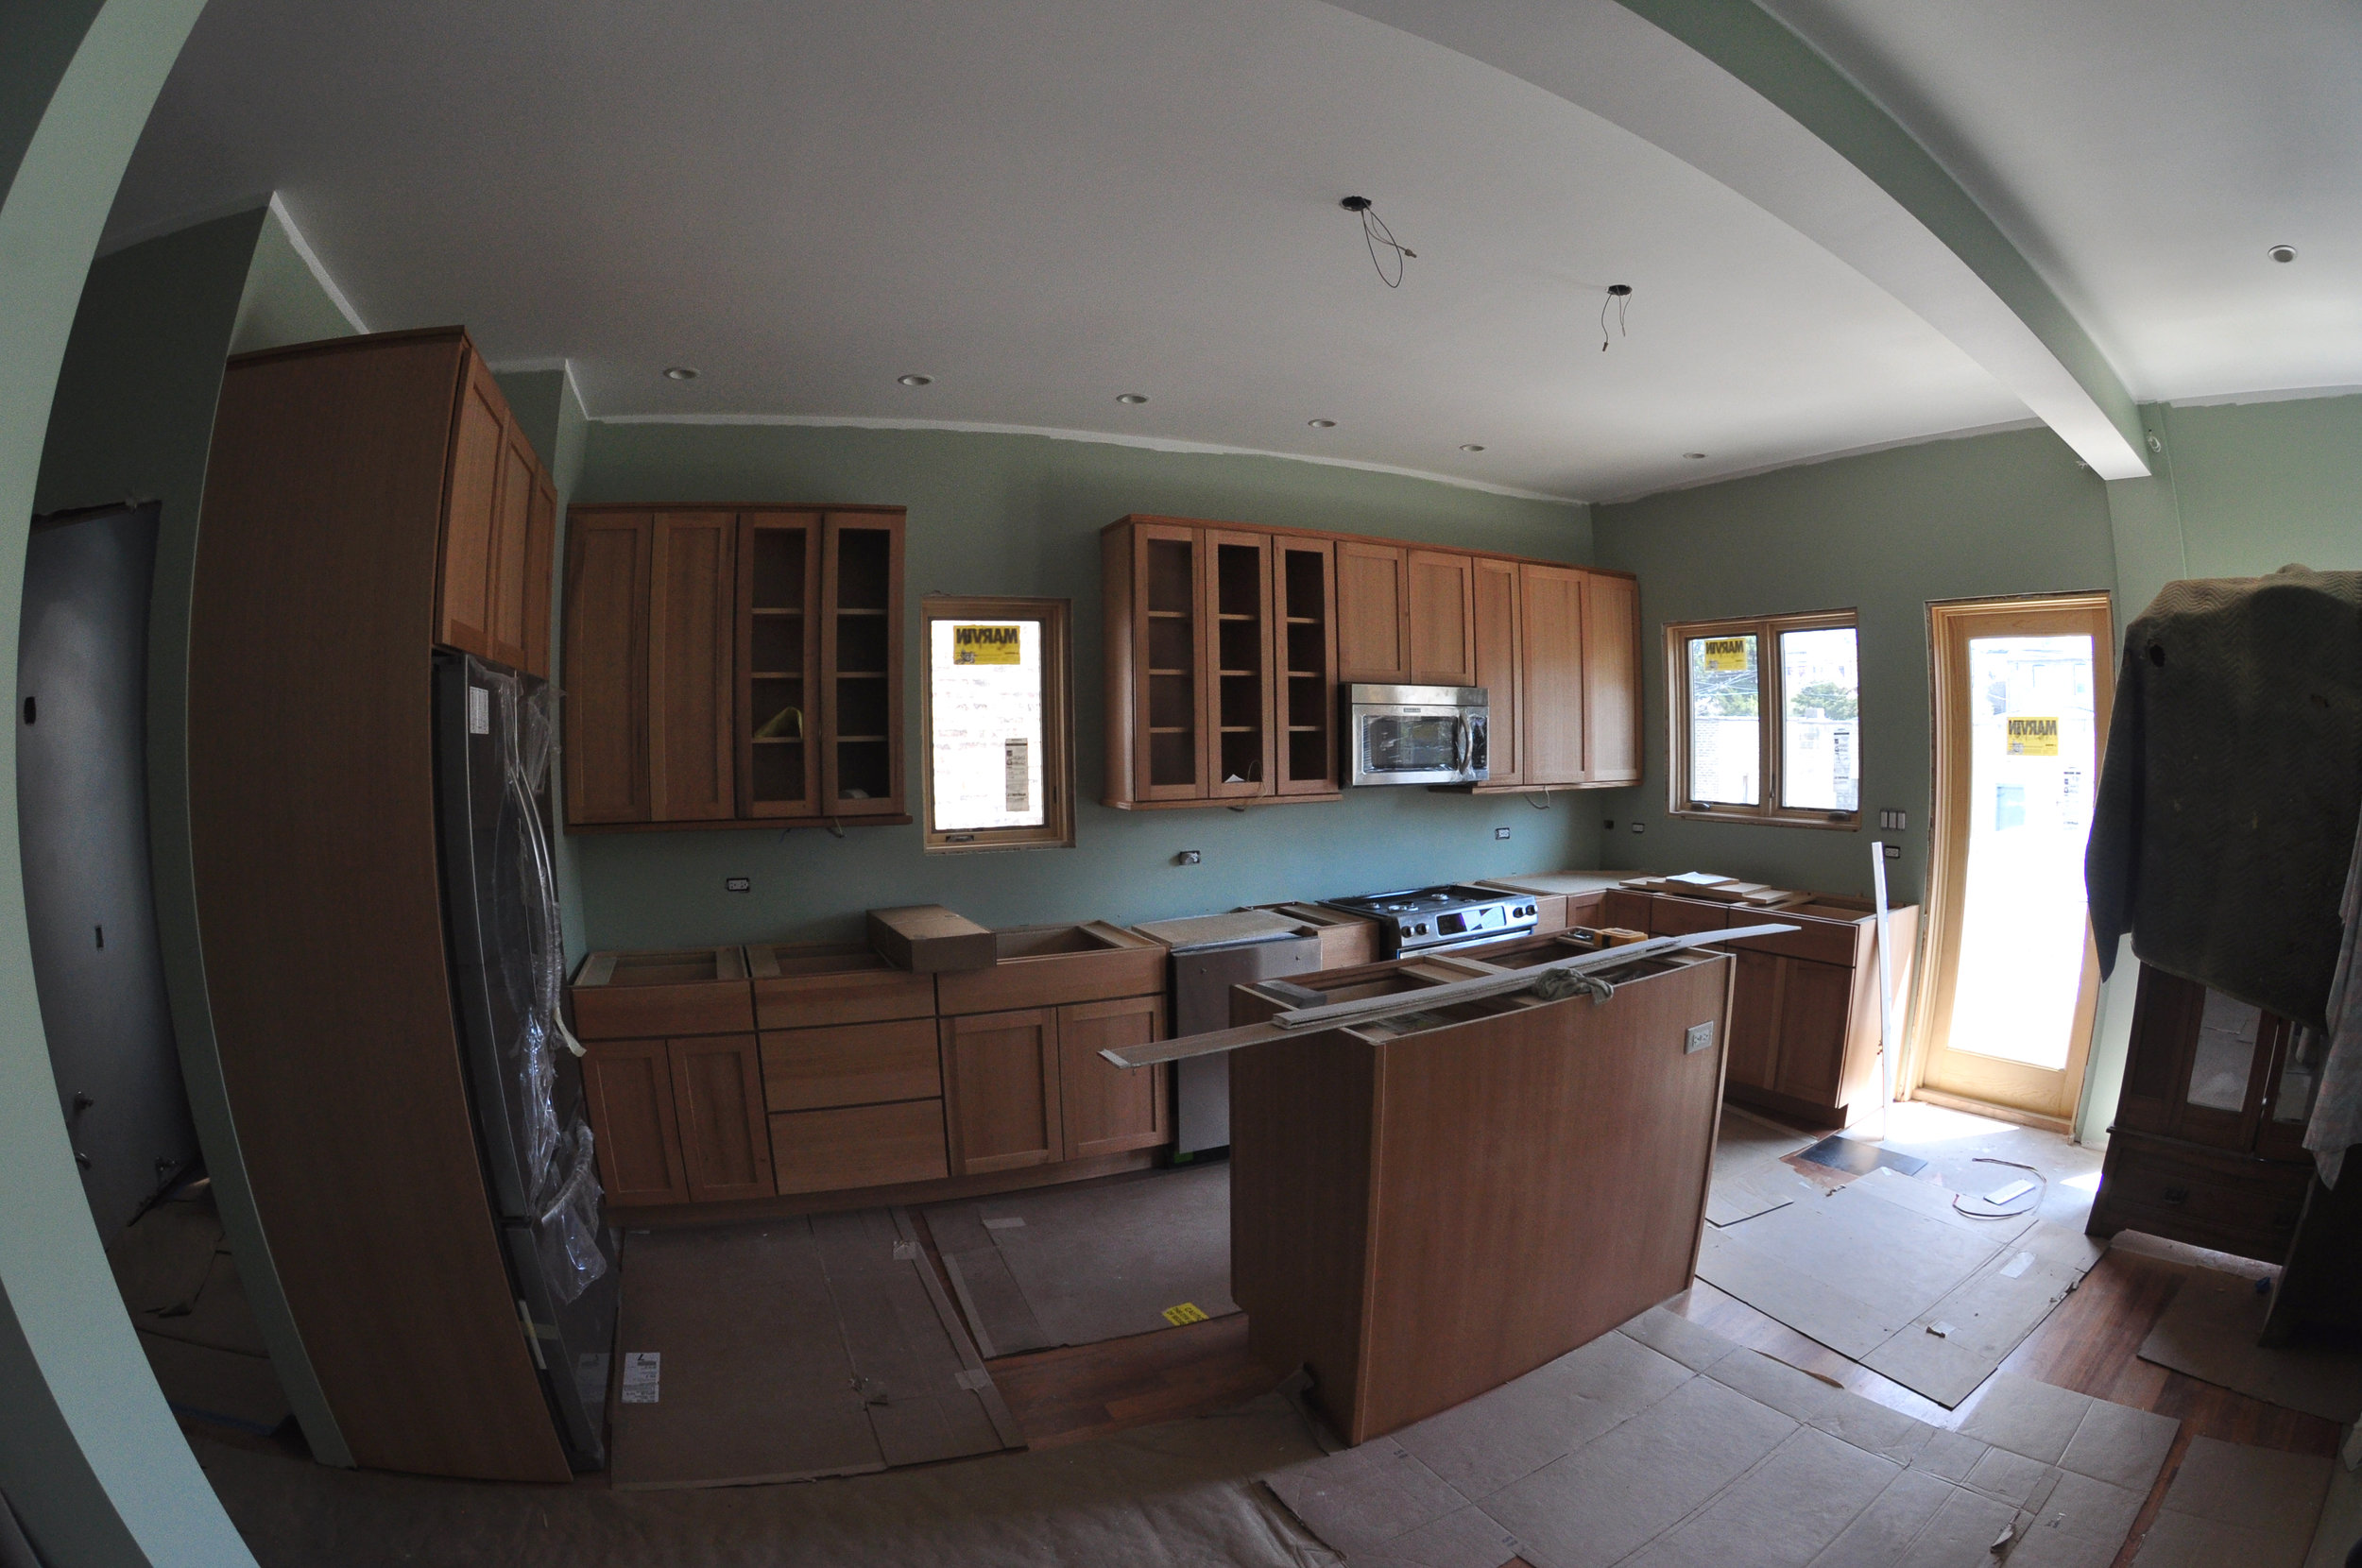 residential addition and kitchen renovation